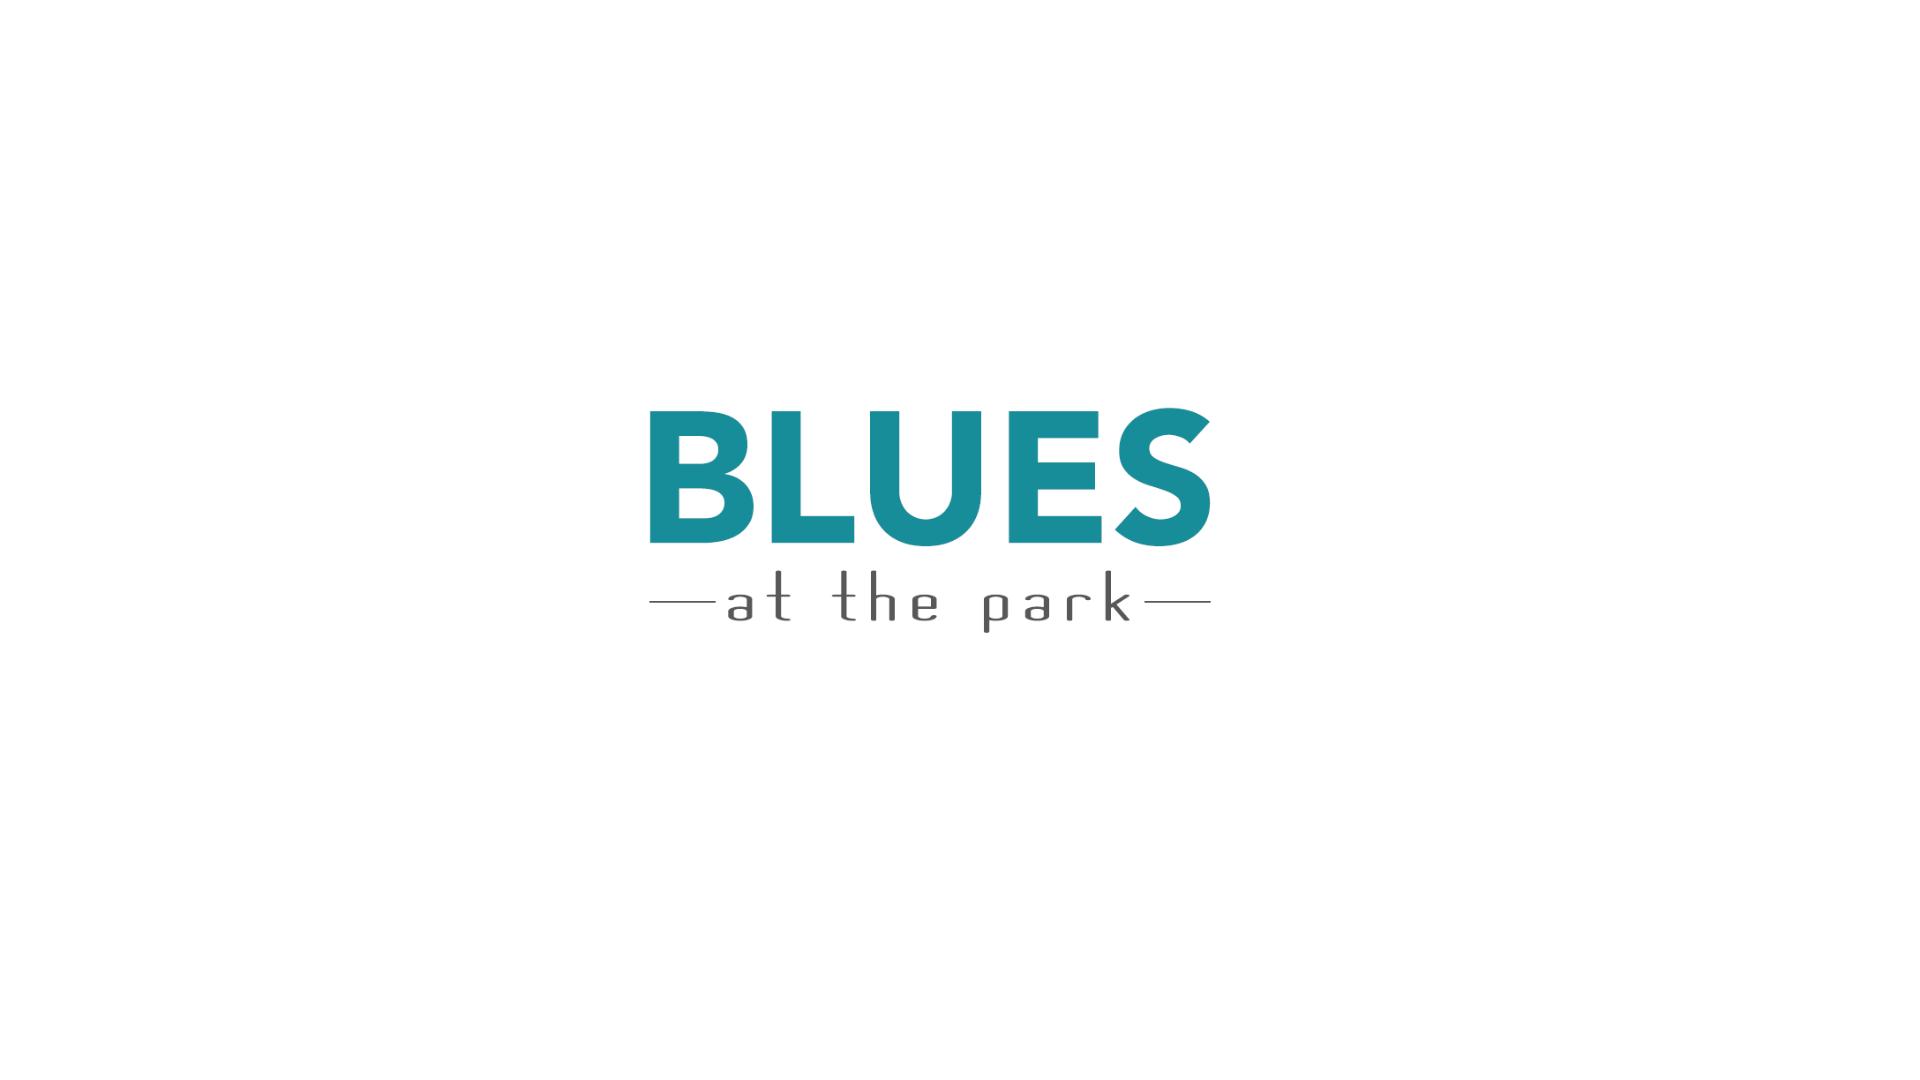 Sunday Opening Hours - Blues at the park